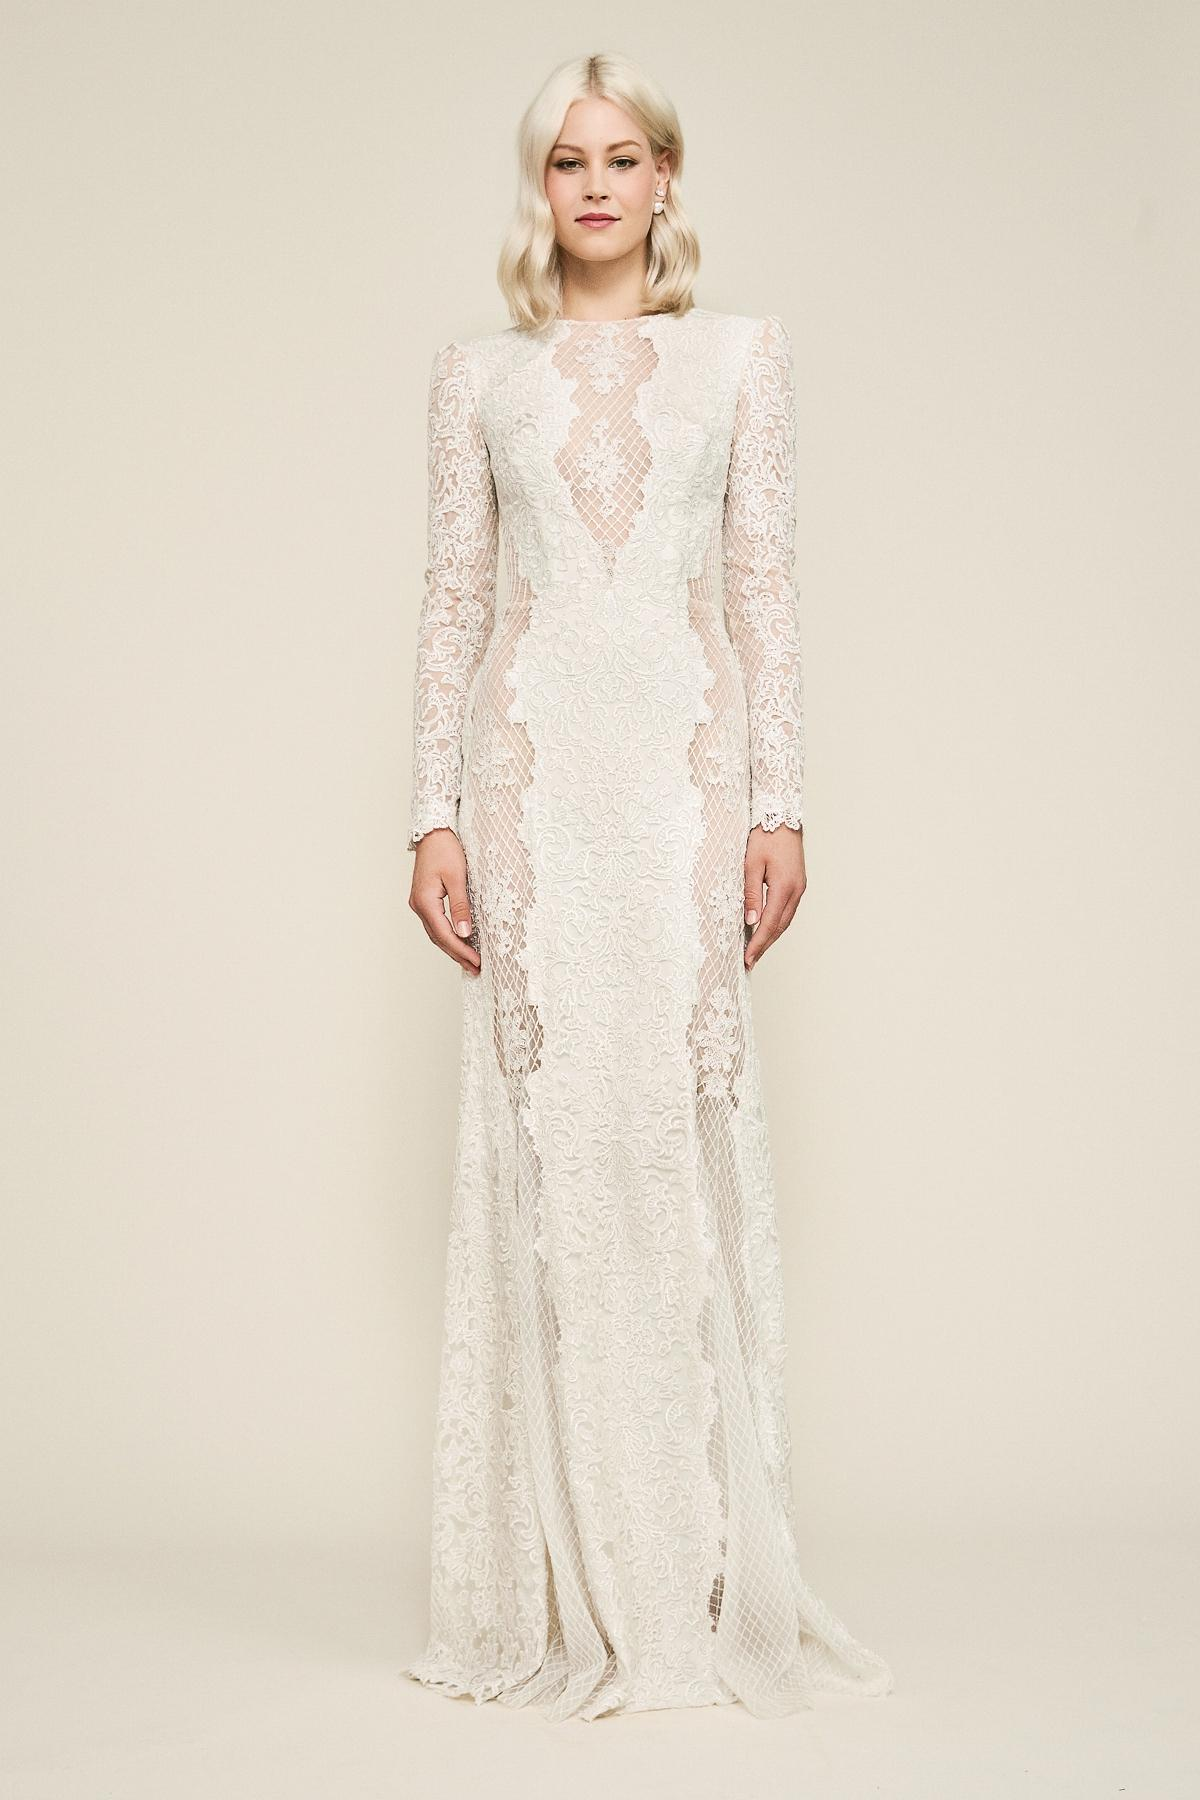 acbe5c6b25 Tadashi Shoji Hotah Long-sleeve Embroidered Gown in Natural - Lyst